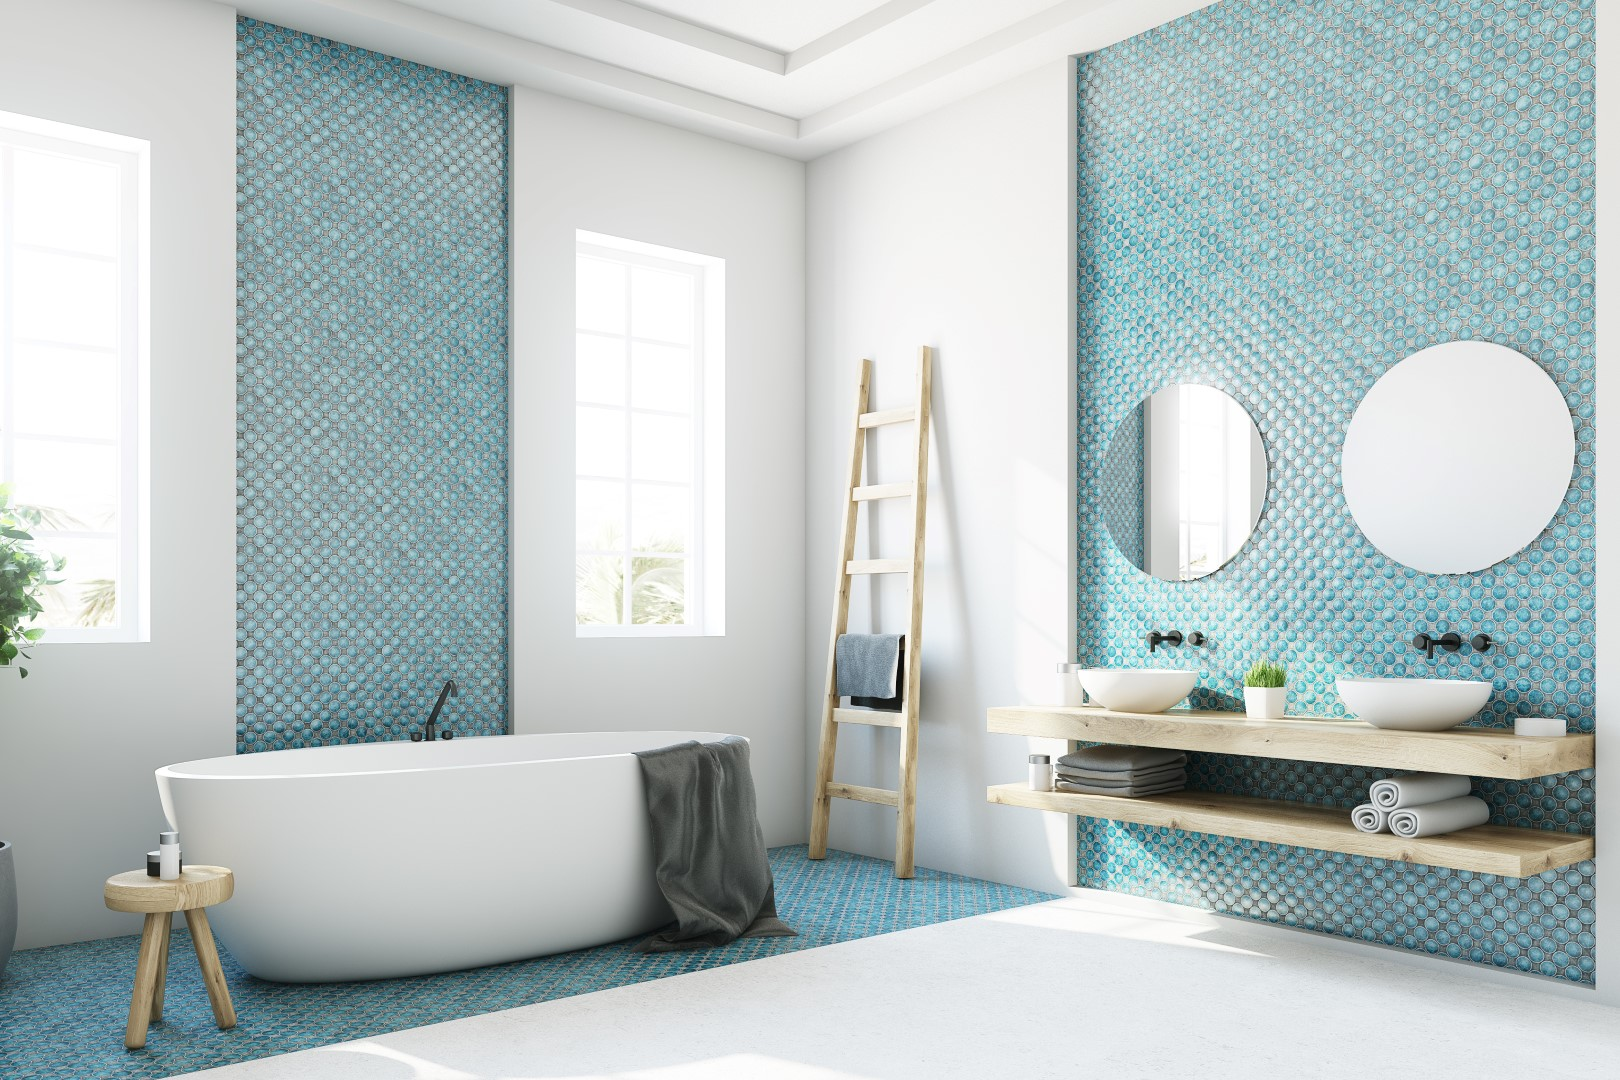 5 Incredible Tiles Ideas For Your Bathroom Maison Valentina Blog